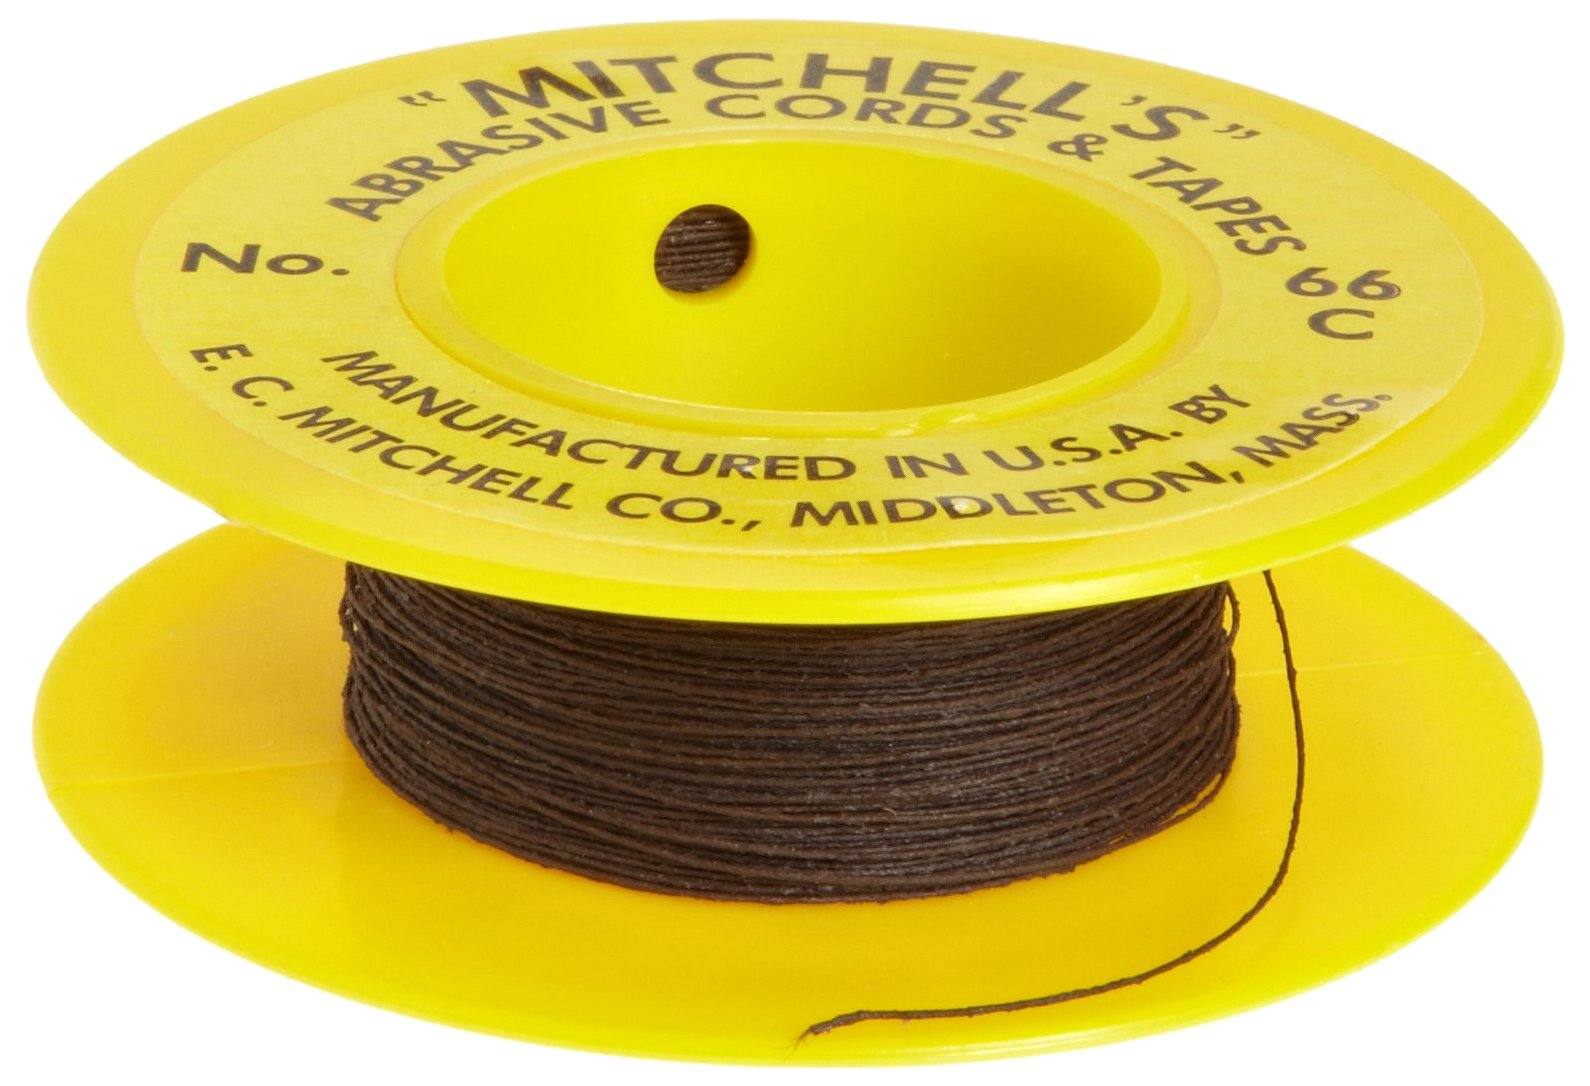 Mitchell Abrasives 66-C Round Crocus Polishing Cord, .012'' Diameter x 25 Feet by Mitchell Abrasives